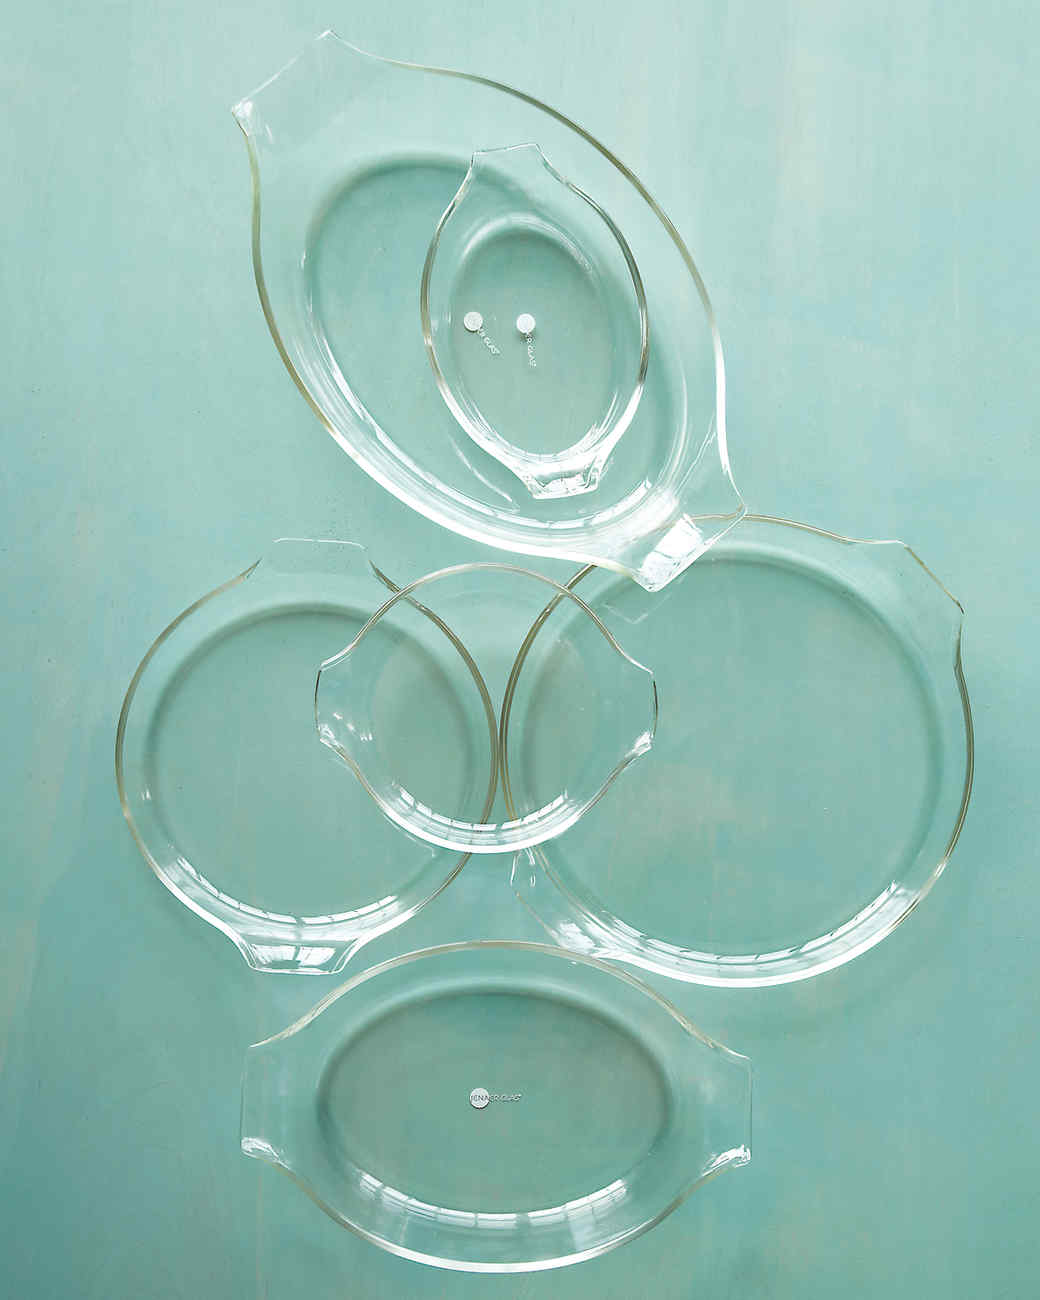 glass-casseroles-md108967.jpg